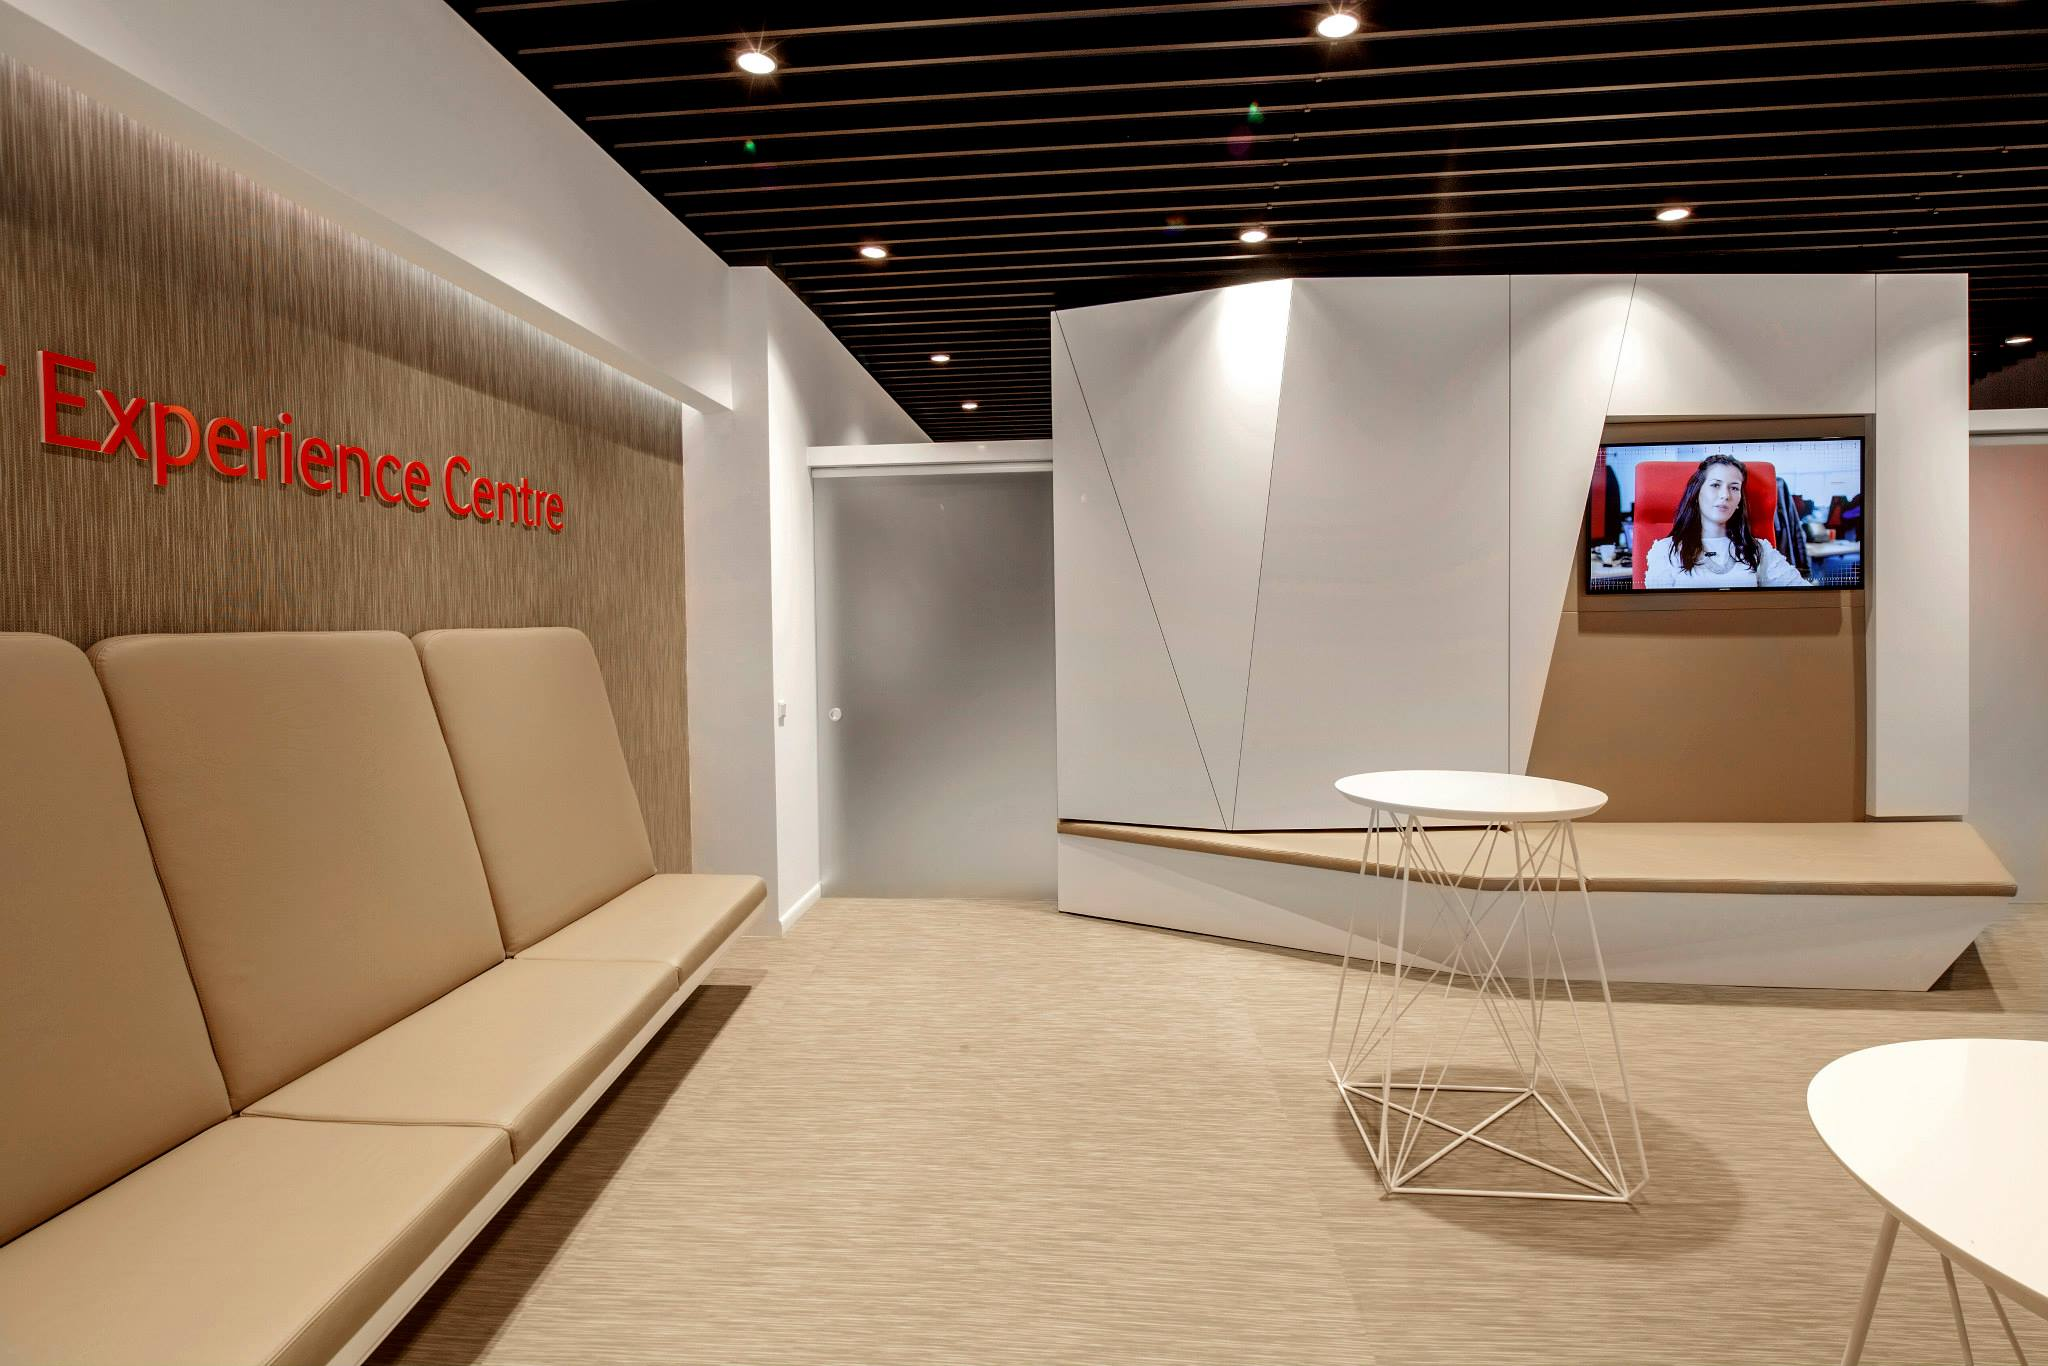 VODAFONE-Customer-Experience-Center-Pipera_Trivenus-Ama-Design_04